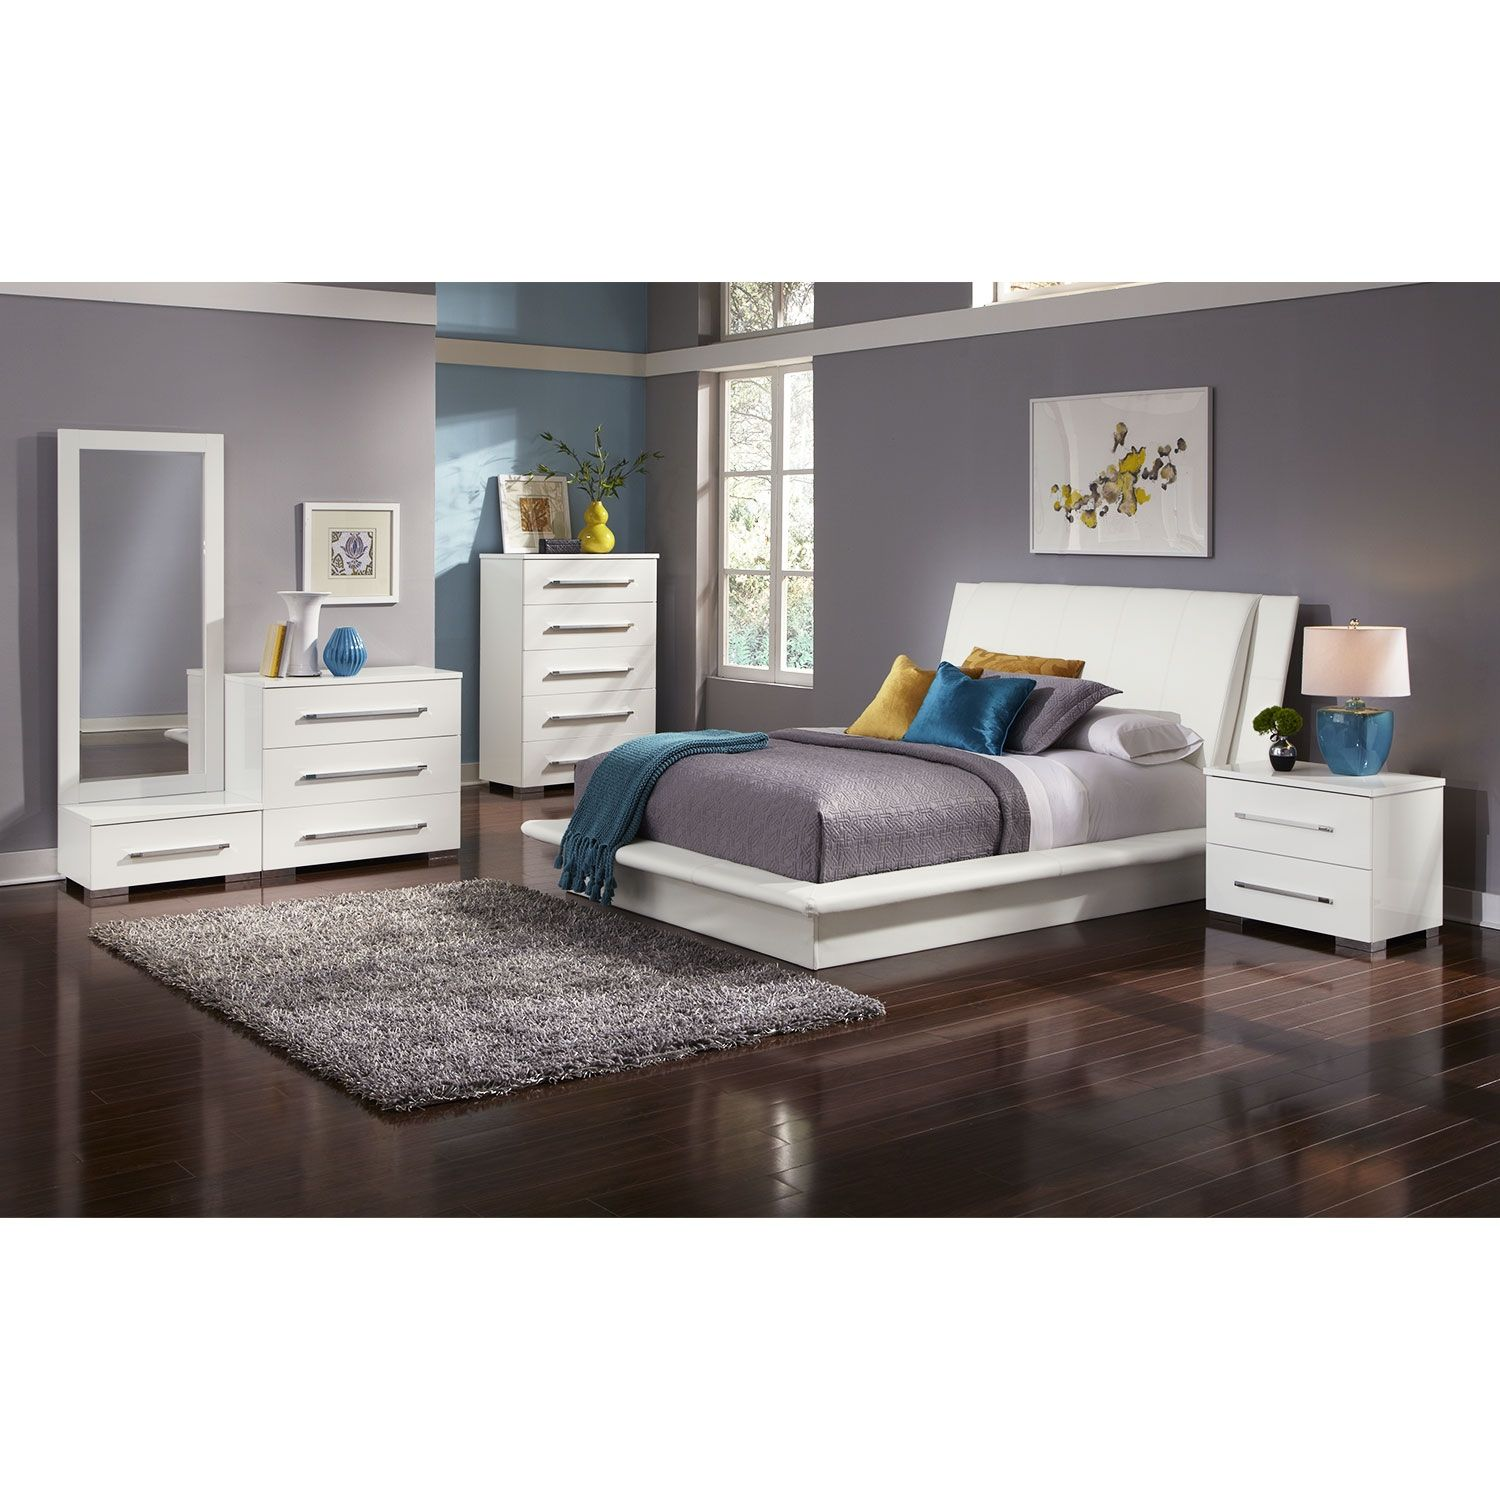 The Marilyn Collection | Value City Furniture | Gil | Pinterest | City  Furniture, Queen Beds And Bedrooms